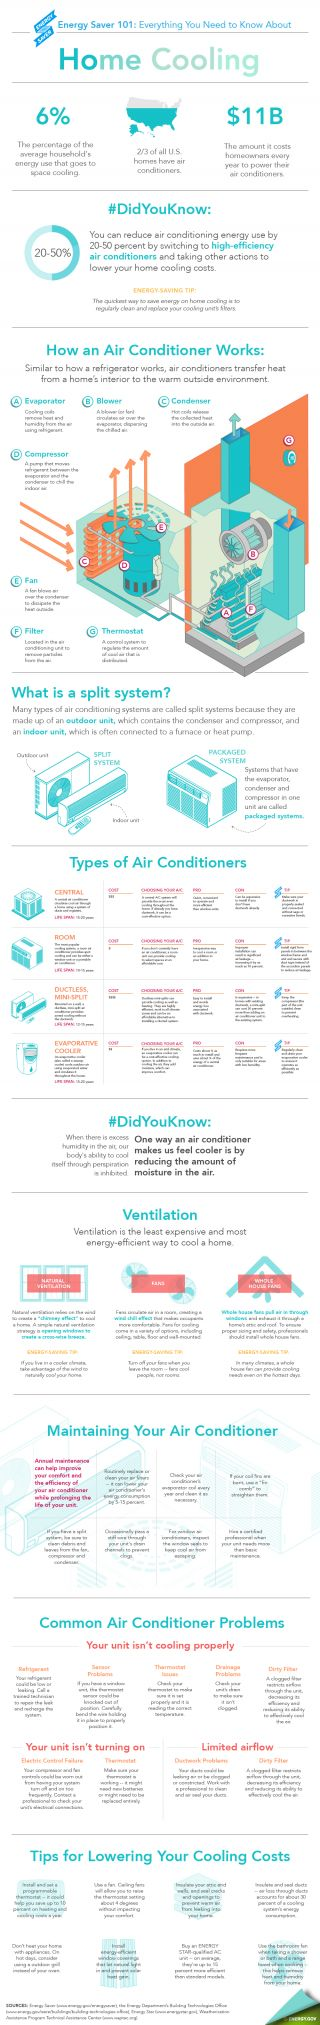 Energy Saver 101 Infographic: Everything you need to know about home cooling (from theDepartment of Energy)